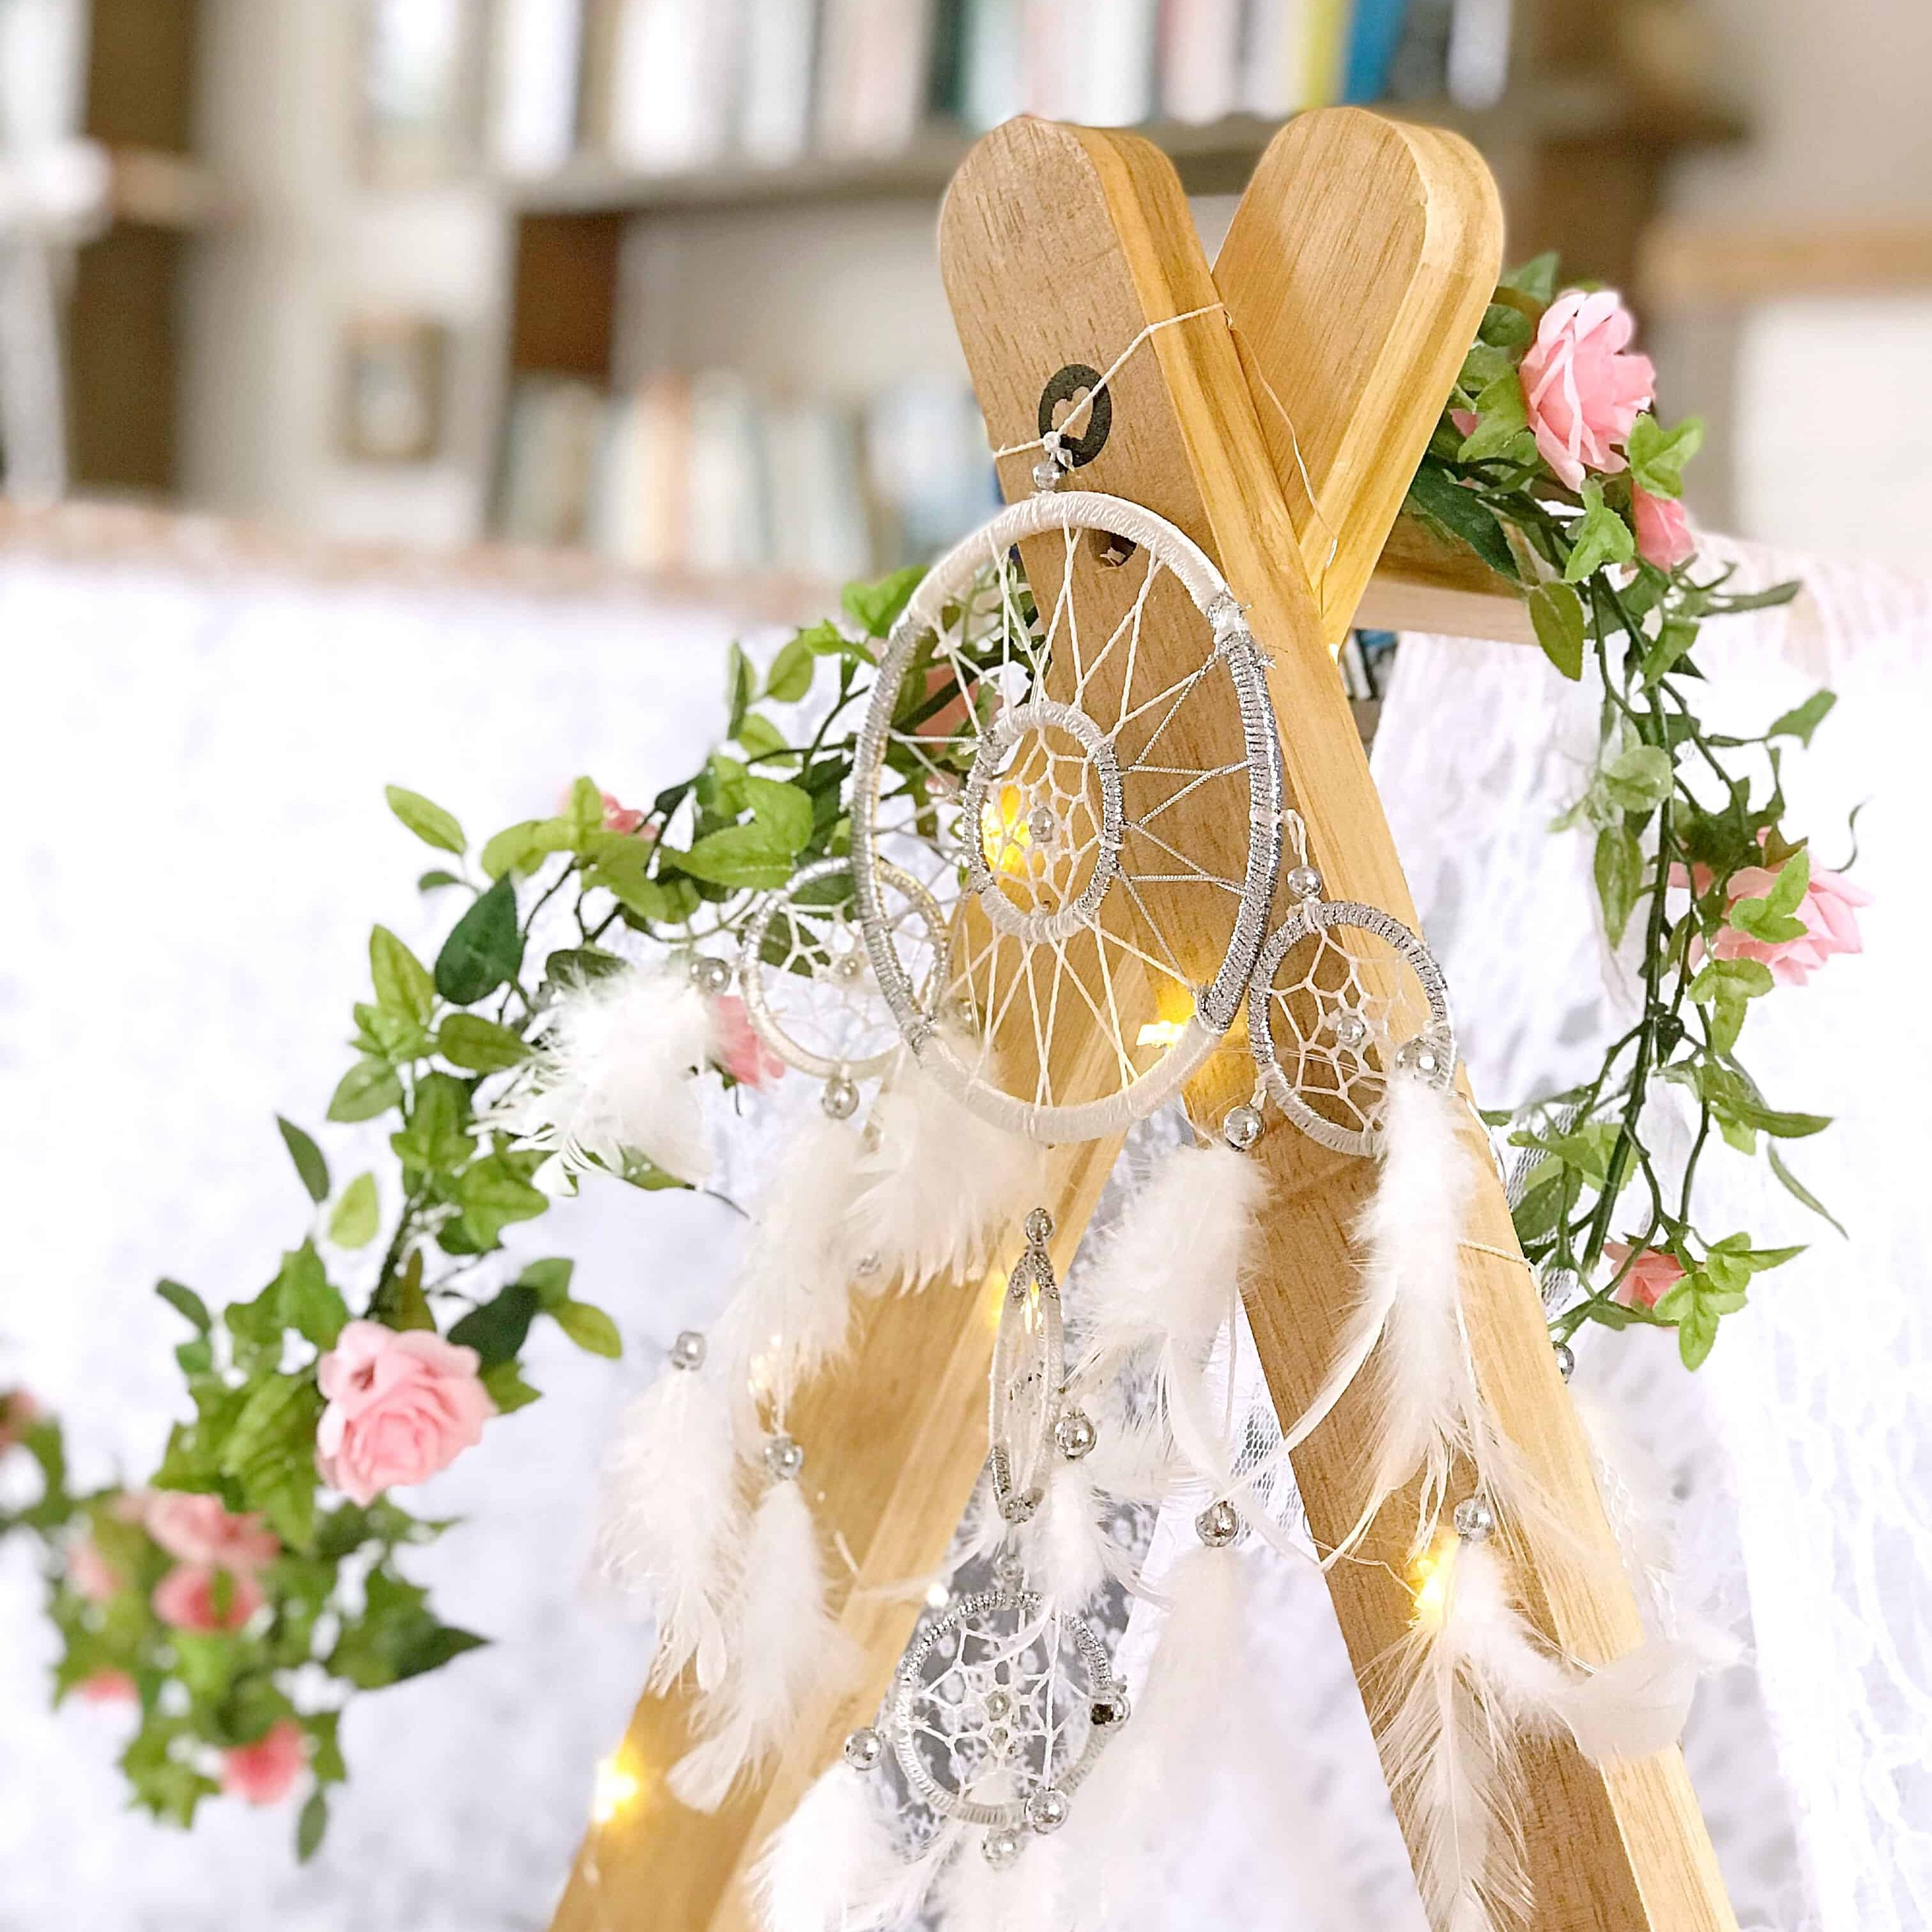 Pretty dream catcher on a teepee